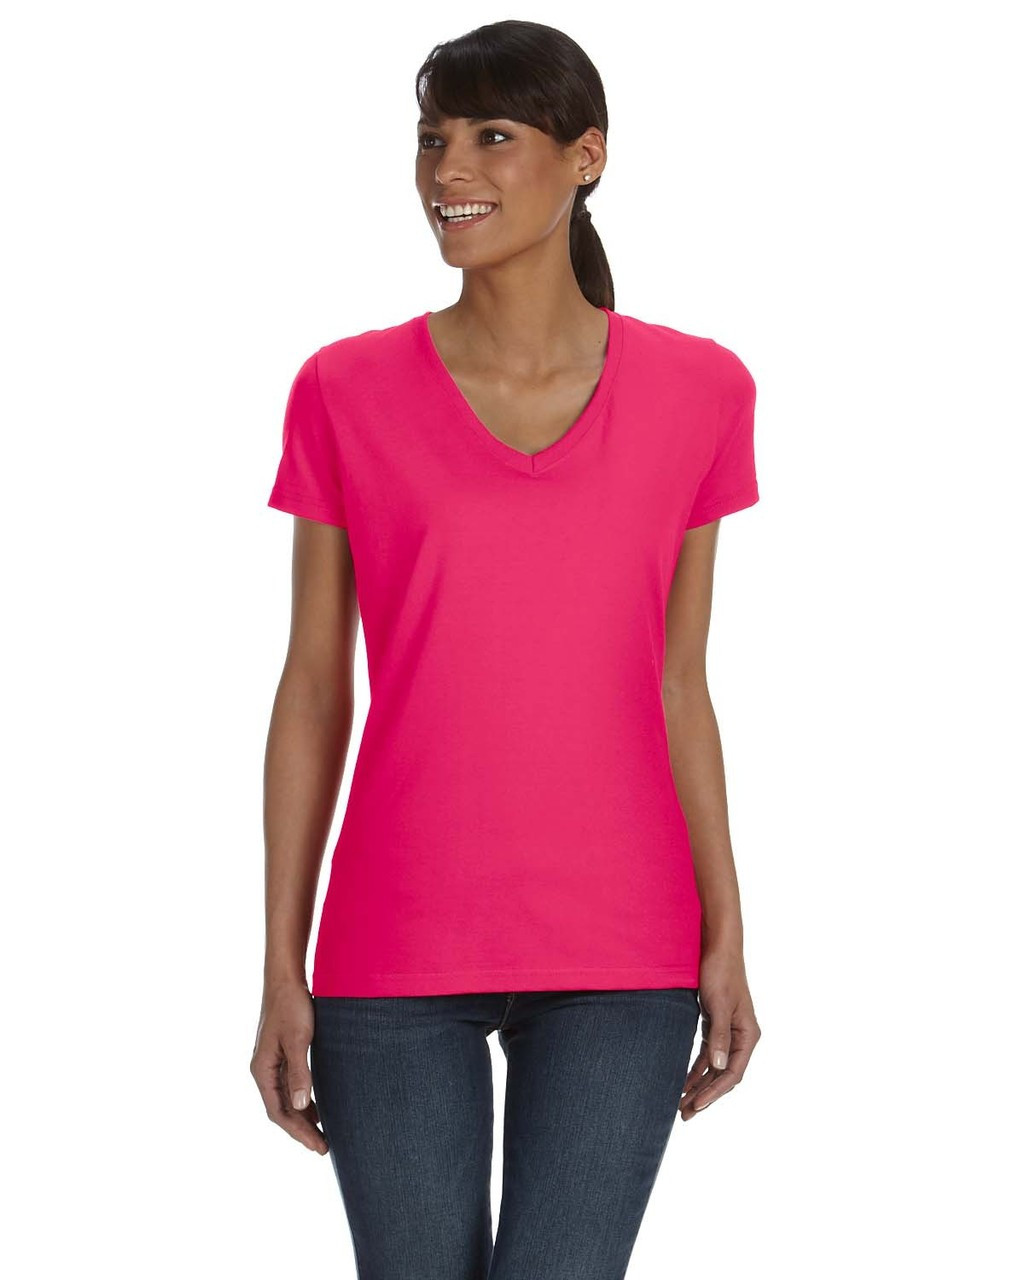 Cyber Pink L39VR Fruit of the Loom Ladies' 100% Heavy Cotton HD® V-Neck T-Shirt   Blankclothing.ca